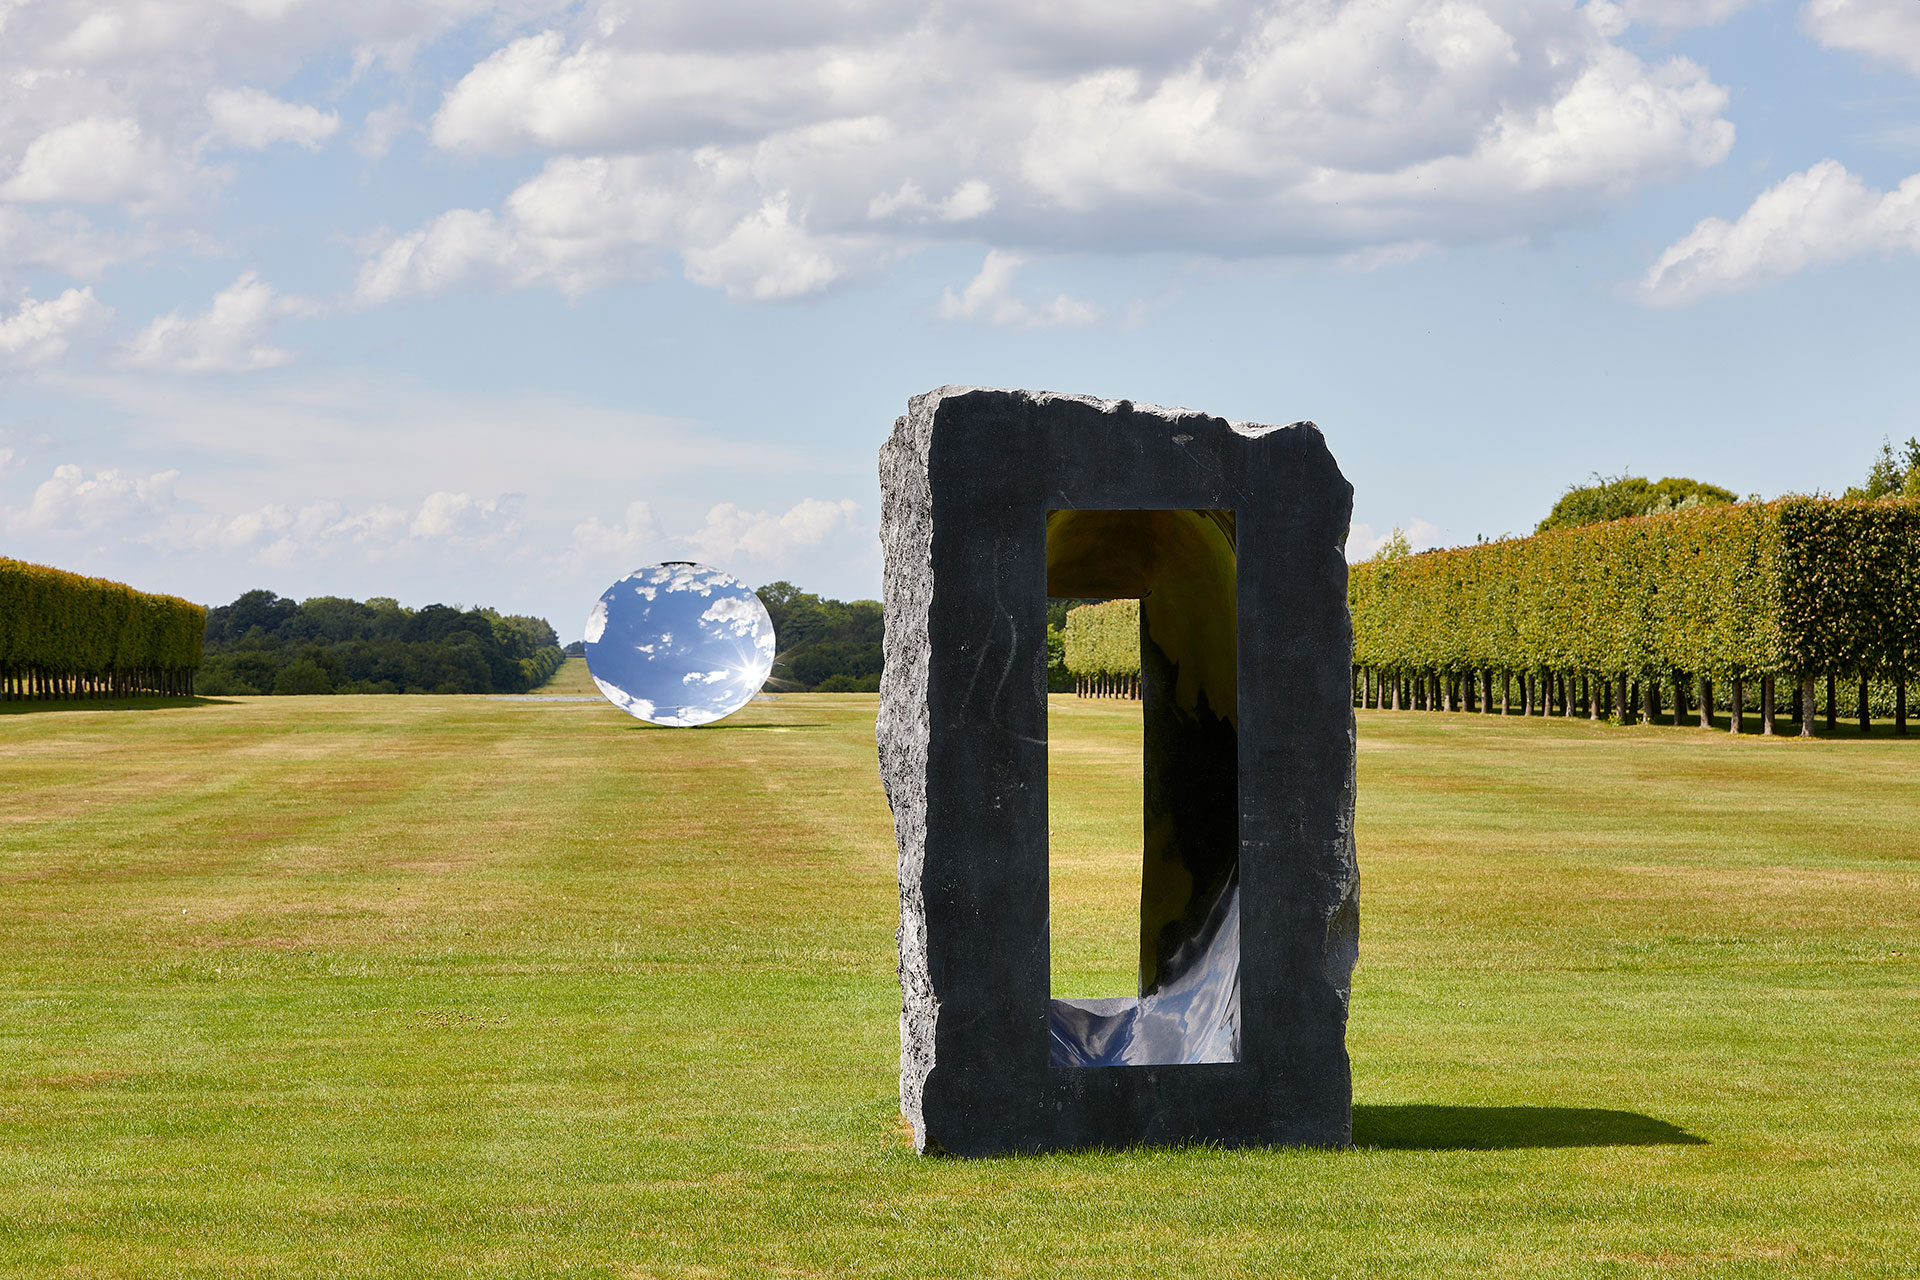 Exhibition view, Anish Kapoor at Houghton Hall. © Anish Kapoor. All rights reserved DACS, 2020. Photo by Pete Huggins. Featured: Untitled, 1997, Kilkenny limestone. Courtesy the artist. Sky Mirror, 2018, stainless steel. Courtesy the artist and Lisson Gallery.